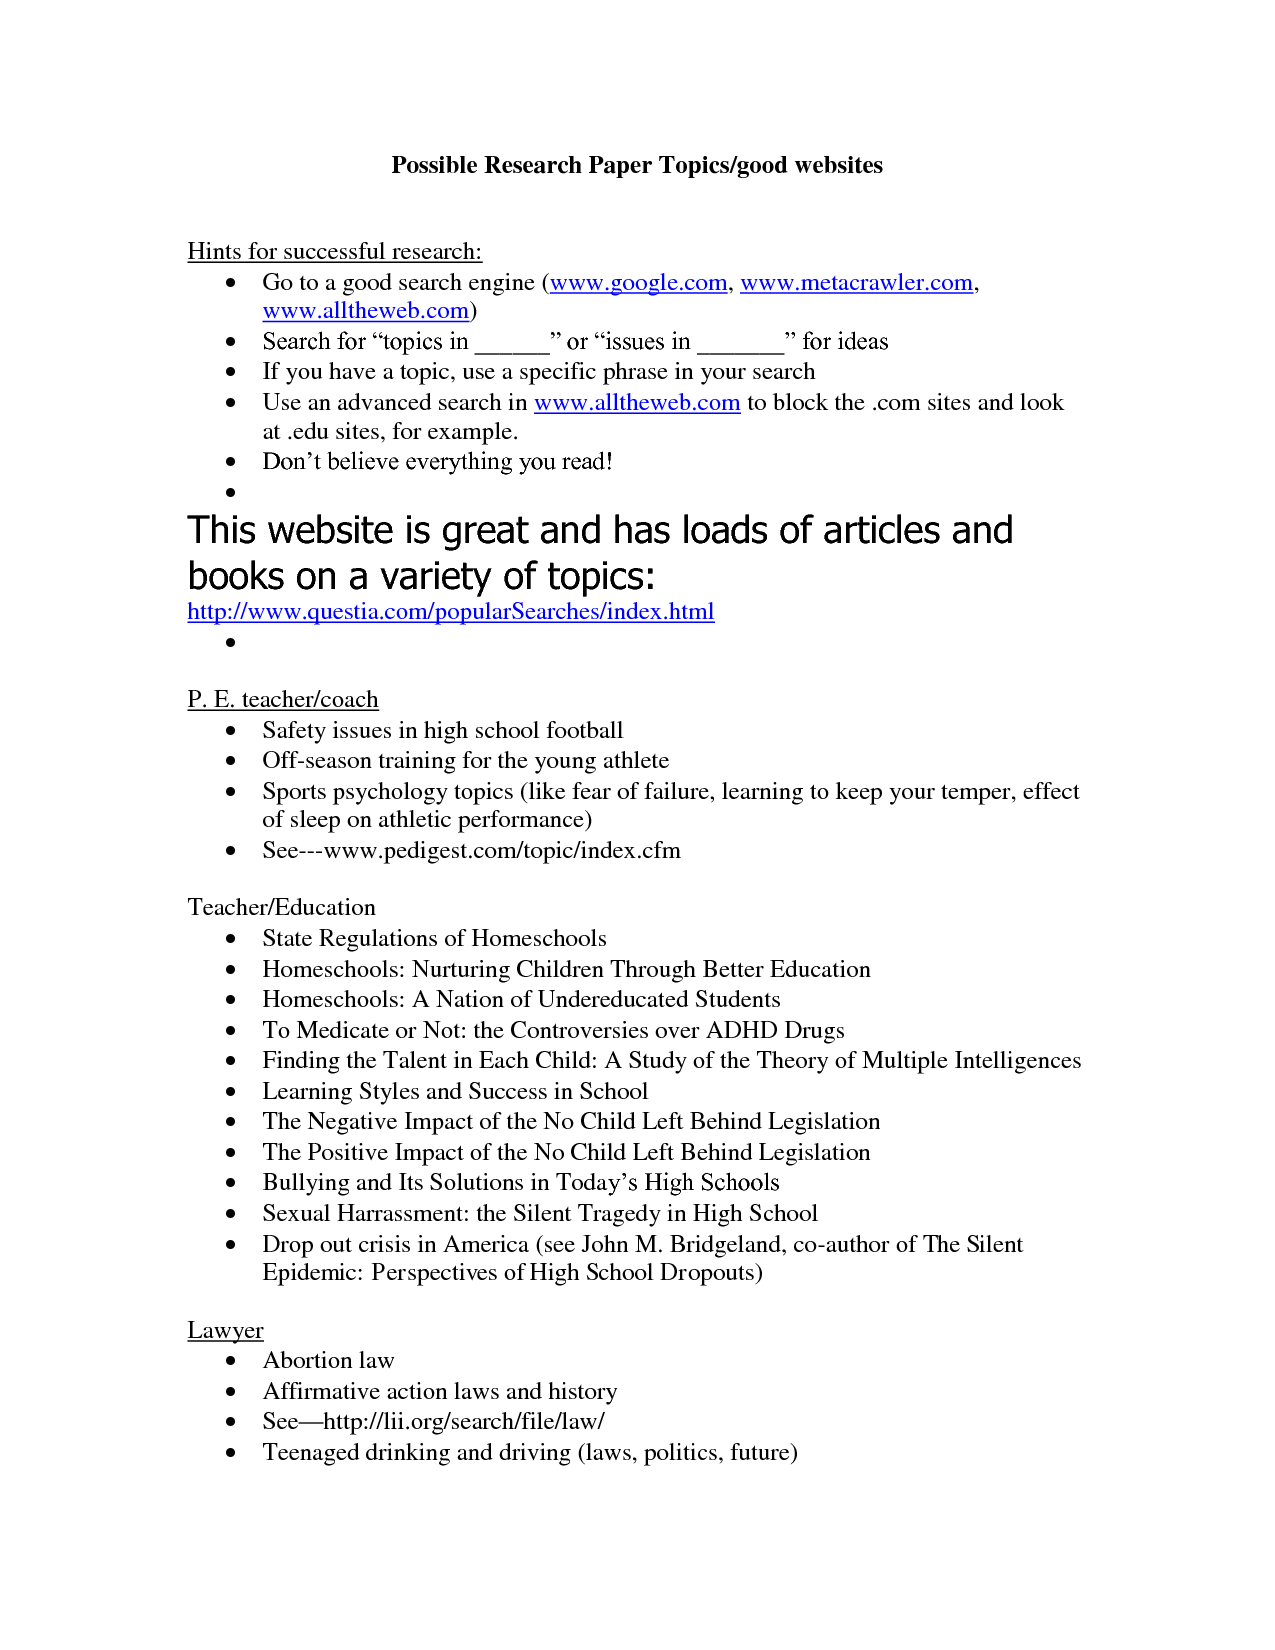 005 Best Solutions Of Interestingrch Paper Topics Fabulous For Papers High School Students To Write Fearsome A Research On Fun Good Essay Ideas Full